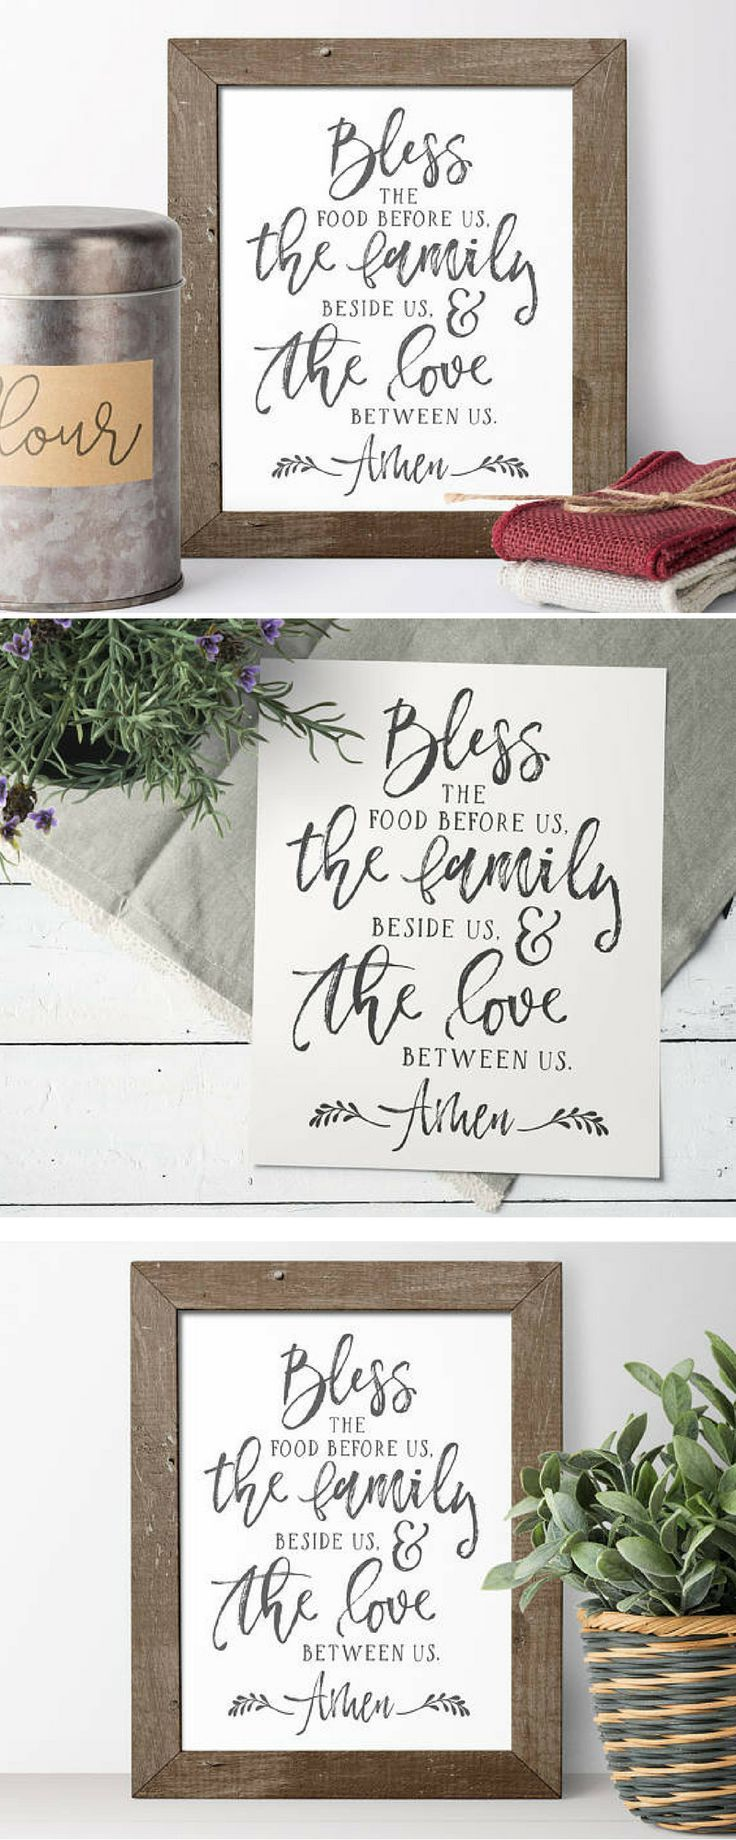 Farmhouse sign | Printable | Farmhouse dining room | Rustic dining room | Dining room decor | Budget decor | Bless the food before us, the family beside us, and the love between us.  Amen.   #affiliatelink #decoronabudget  #printable #joannagaines #magnolia #homedecor #etsy #etsyfind